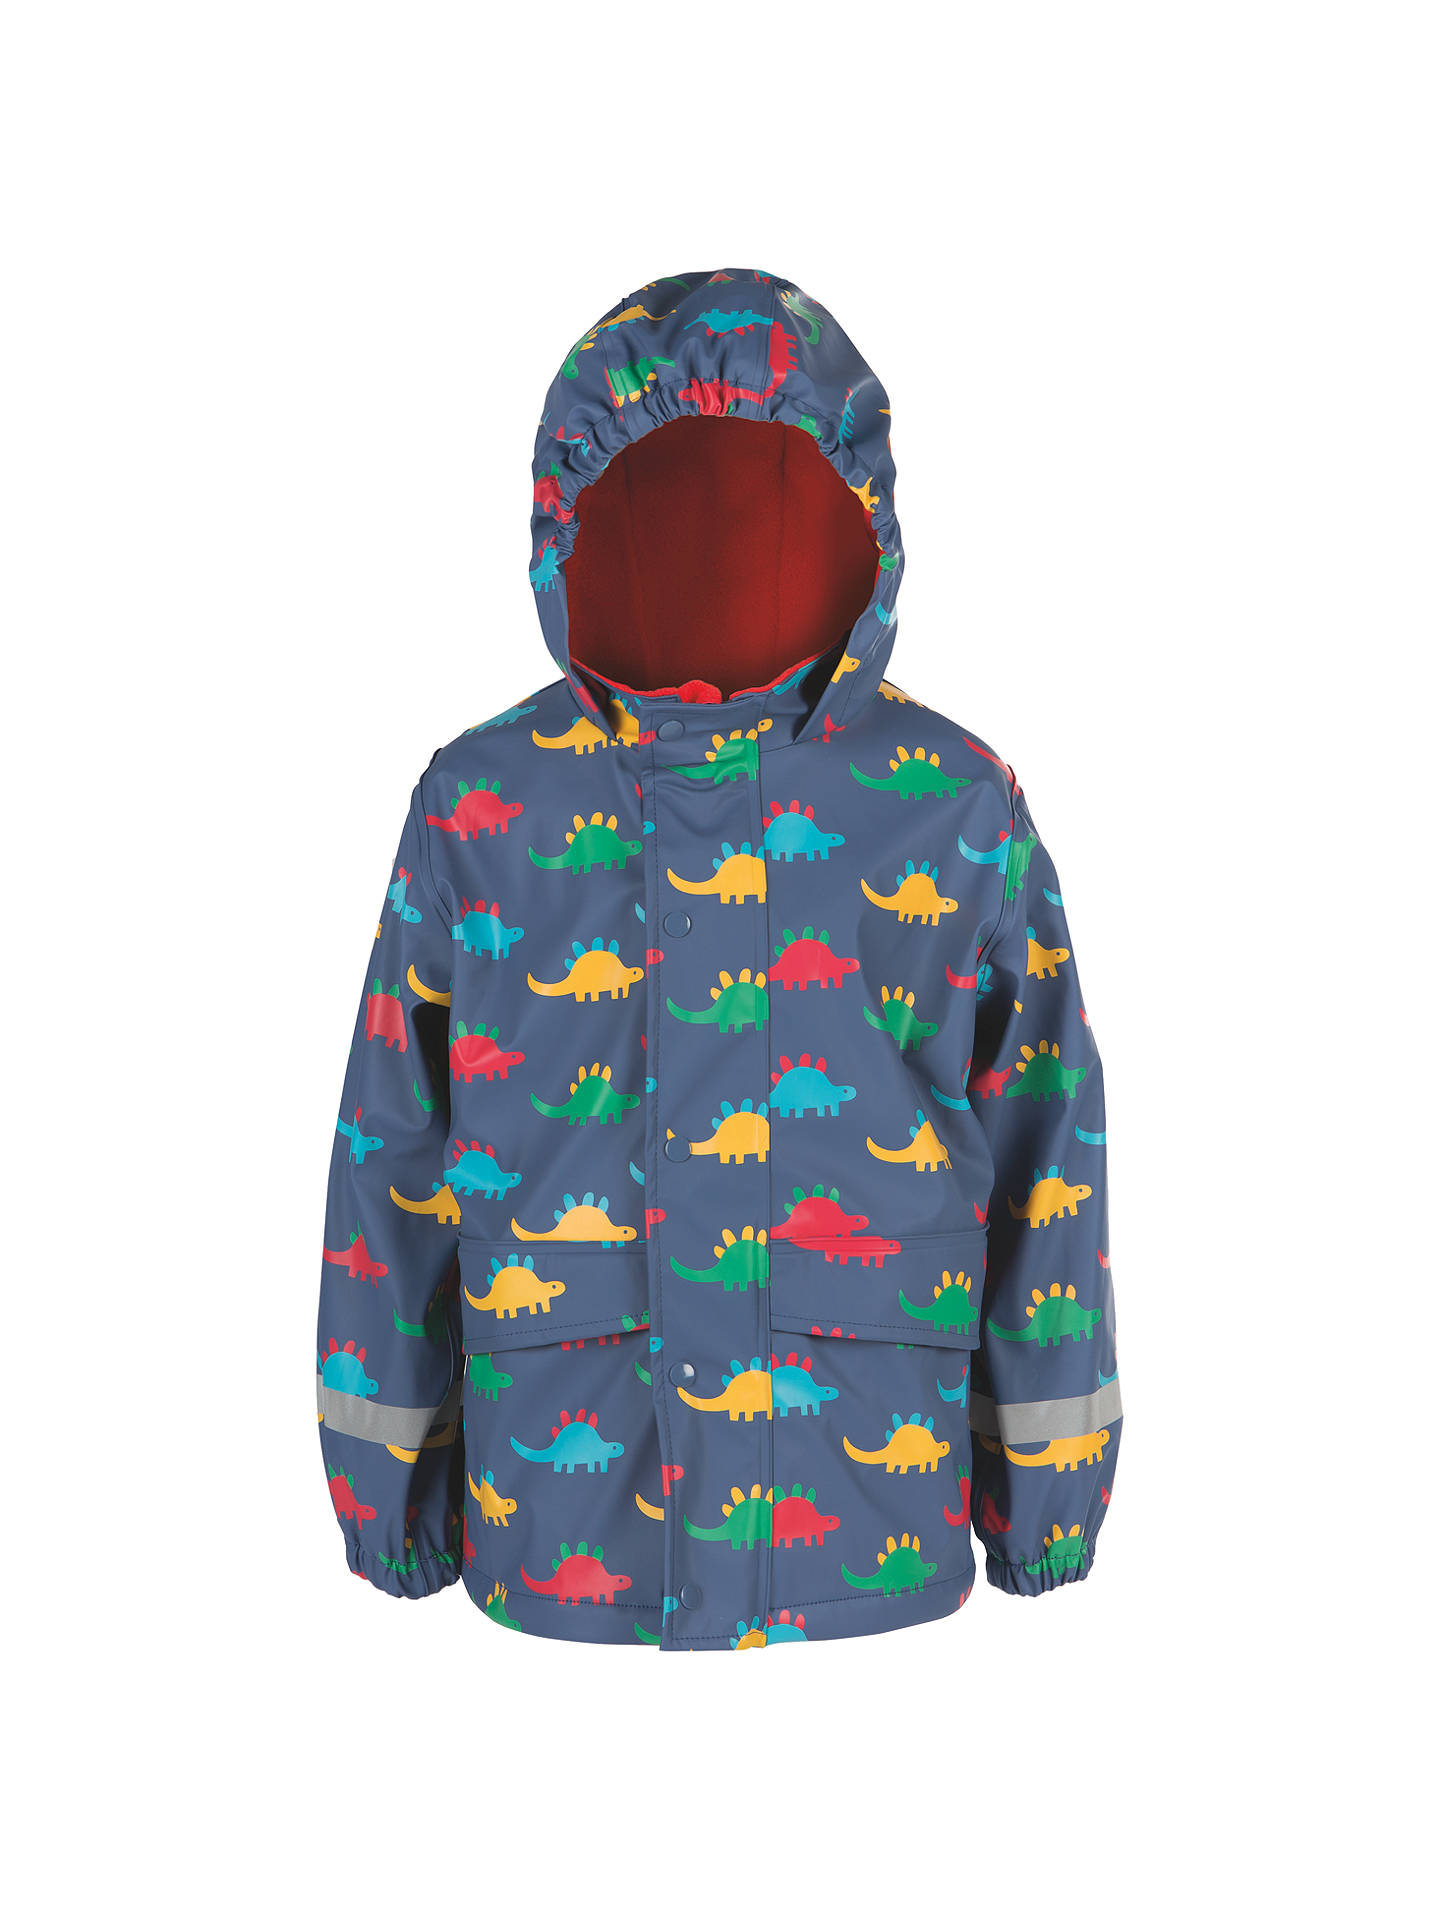 9f541c93e8a0 Frugi Organic Children s Puddle Buster Dinosaur Coat